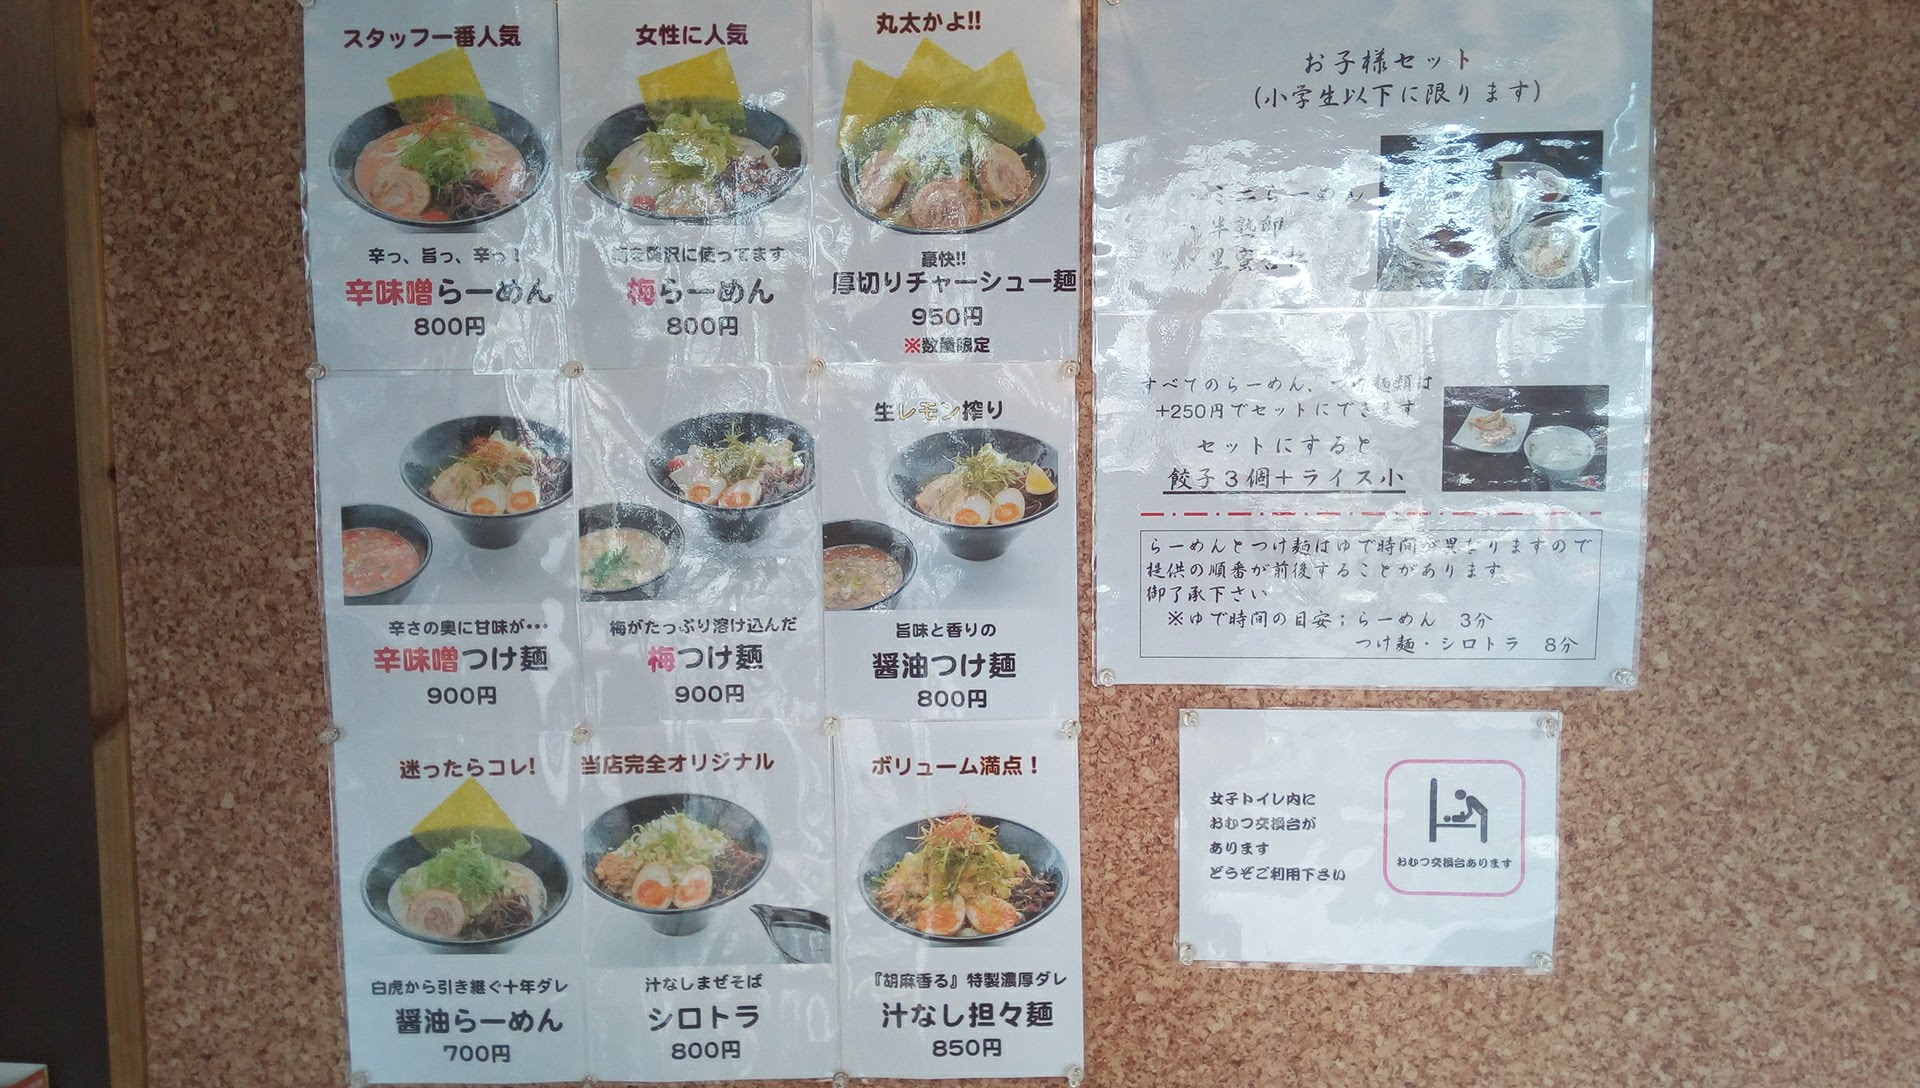 The menu of Toraibal